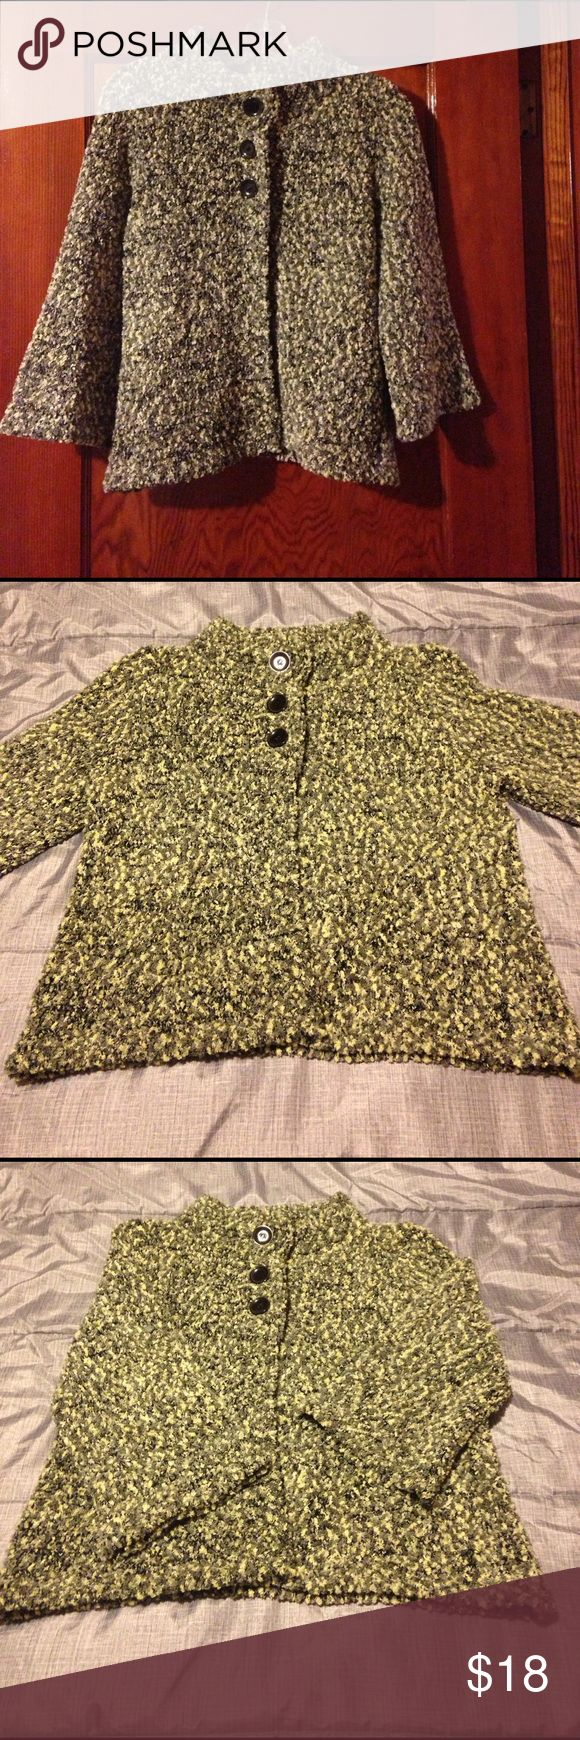 Evan-Picone Cardigan Sweater Soft Evan-Picone Cardigan Sweater. Variegated Greens, 3/4 length sleeves with 3 buttons at top - can be worn buttoned or unbuttoned. Excellent condition. Evan Picone Sweaters Cardigans